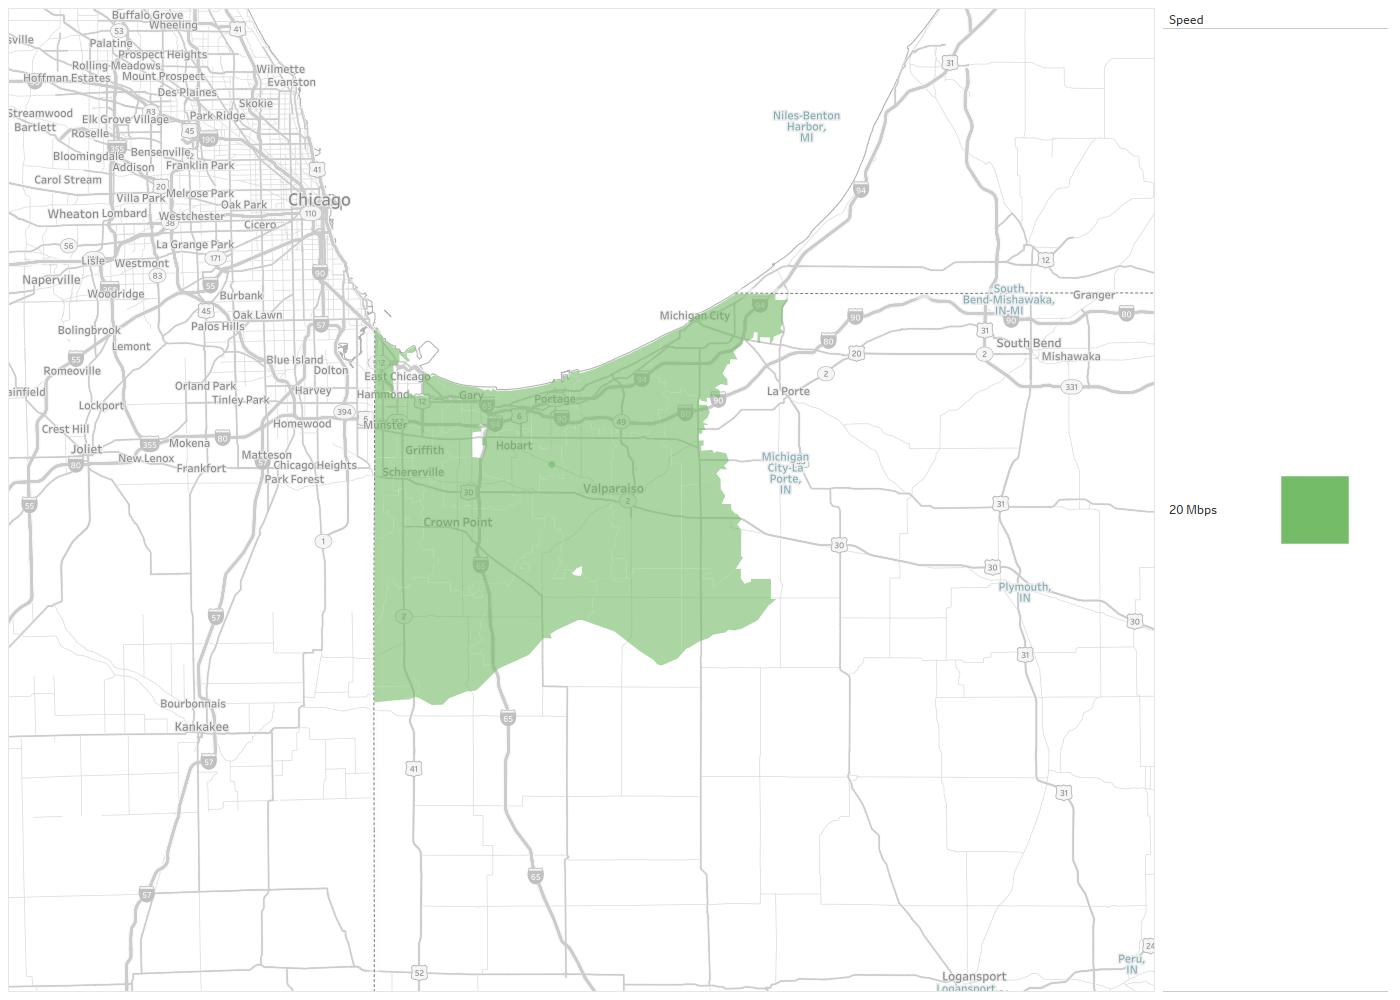 Hoffman Estates Zip Code Map.Midwest Telecom Of America Availability Areas Coverage Map